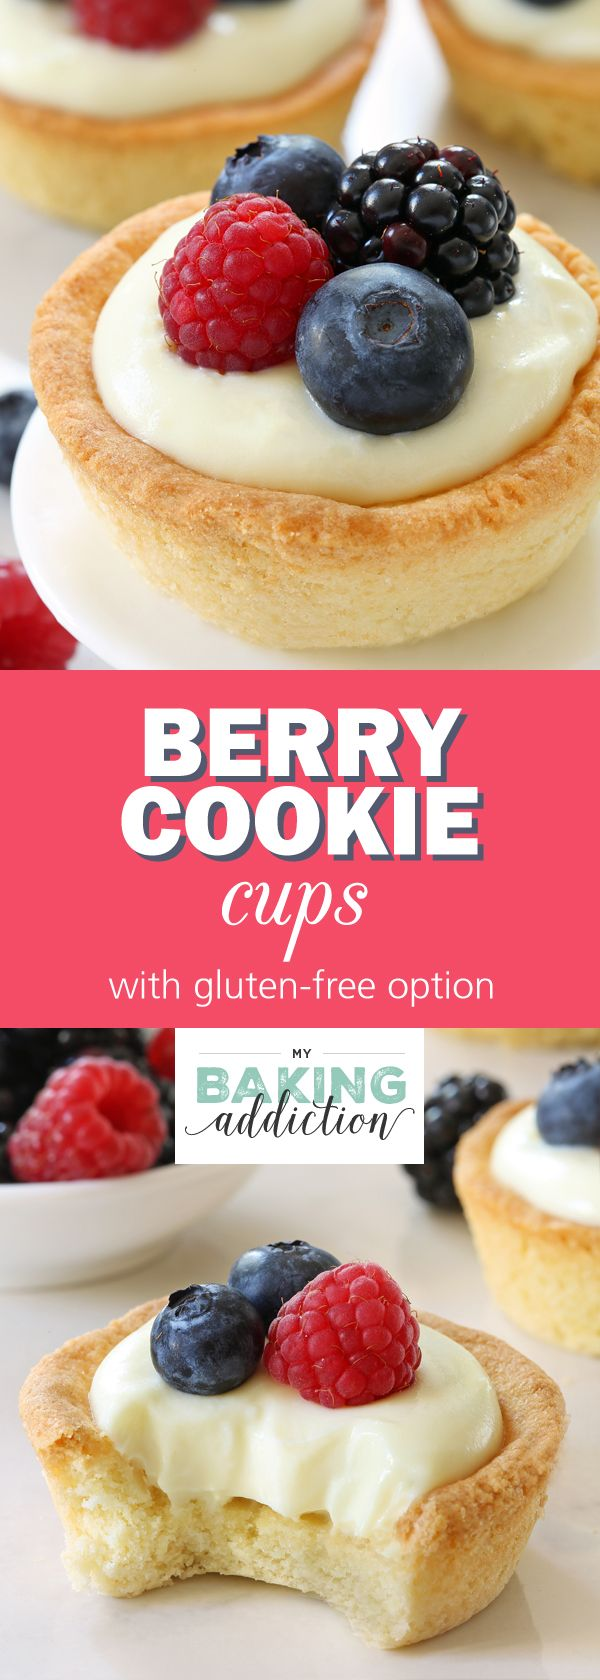 Berry Cookie Cups have a sweet cookie crust and white chocolate cream cheese filling! Fresh, juicy berries make them perfect for summer! Recipe contains gluten-free option. from @bakingaddiction